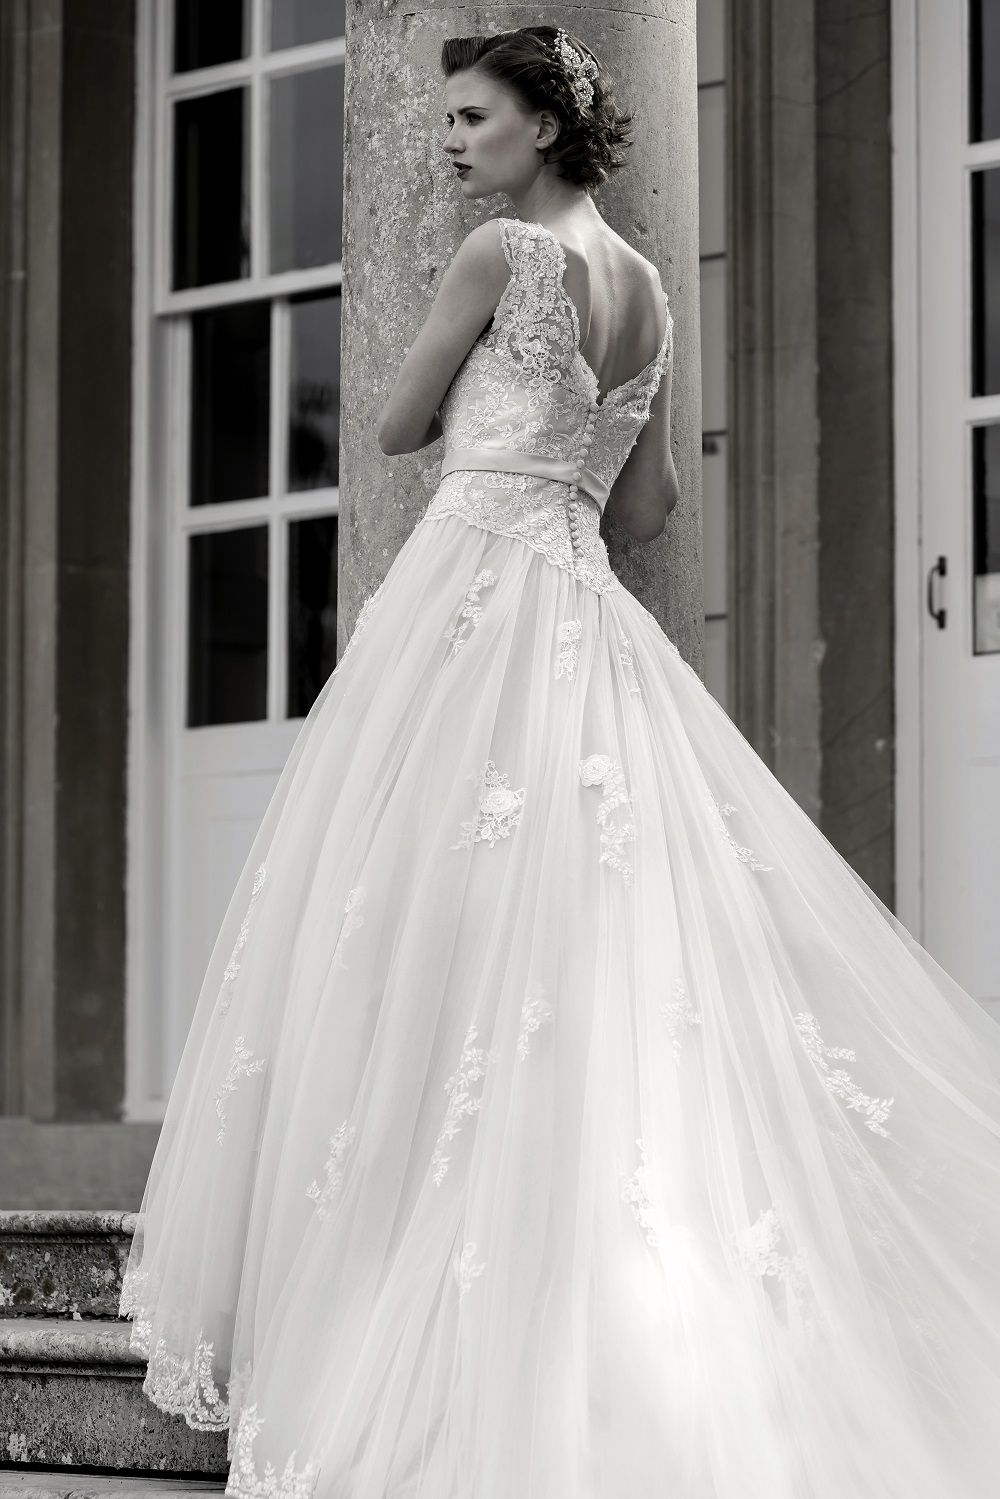 Blossom Stunning full length bridal gown with lace